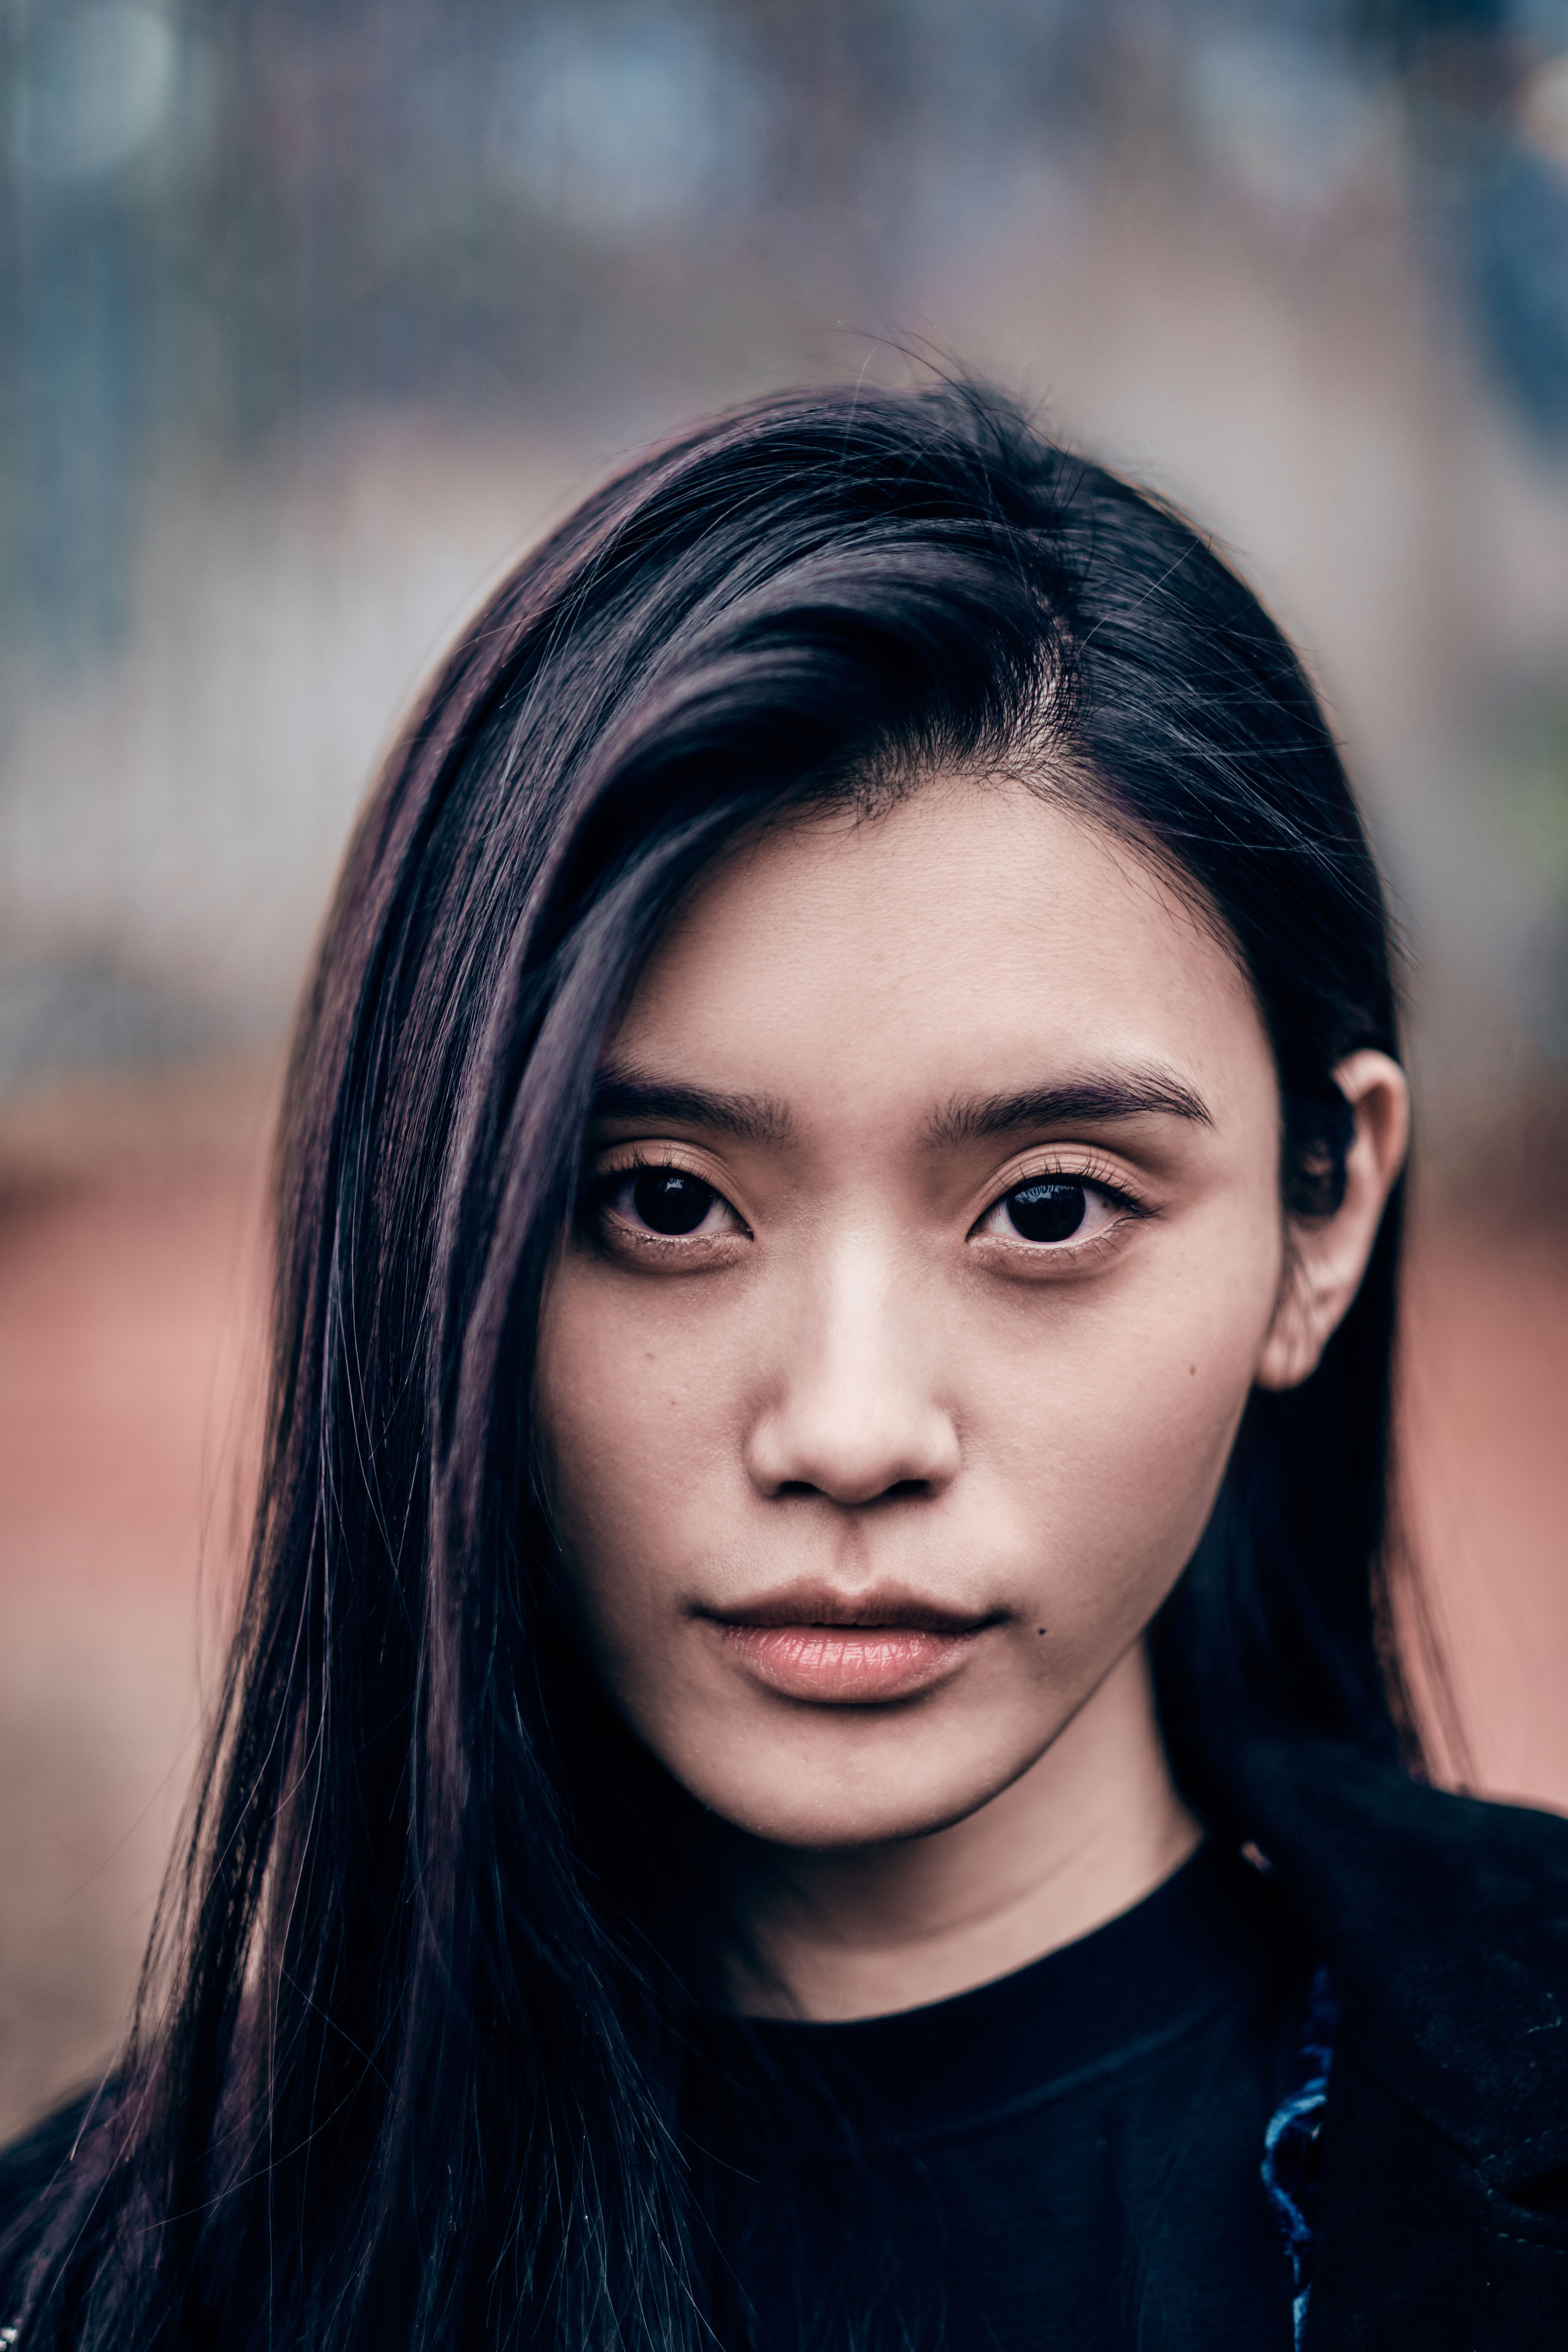 The 30-year old daughter of father (?) and mother(?) Ming Xi in 2020 photo. Ming Xi earned a million dollar salary - leaving the net worth at 0.5 million in 2020